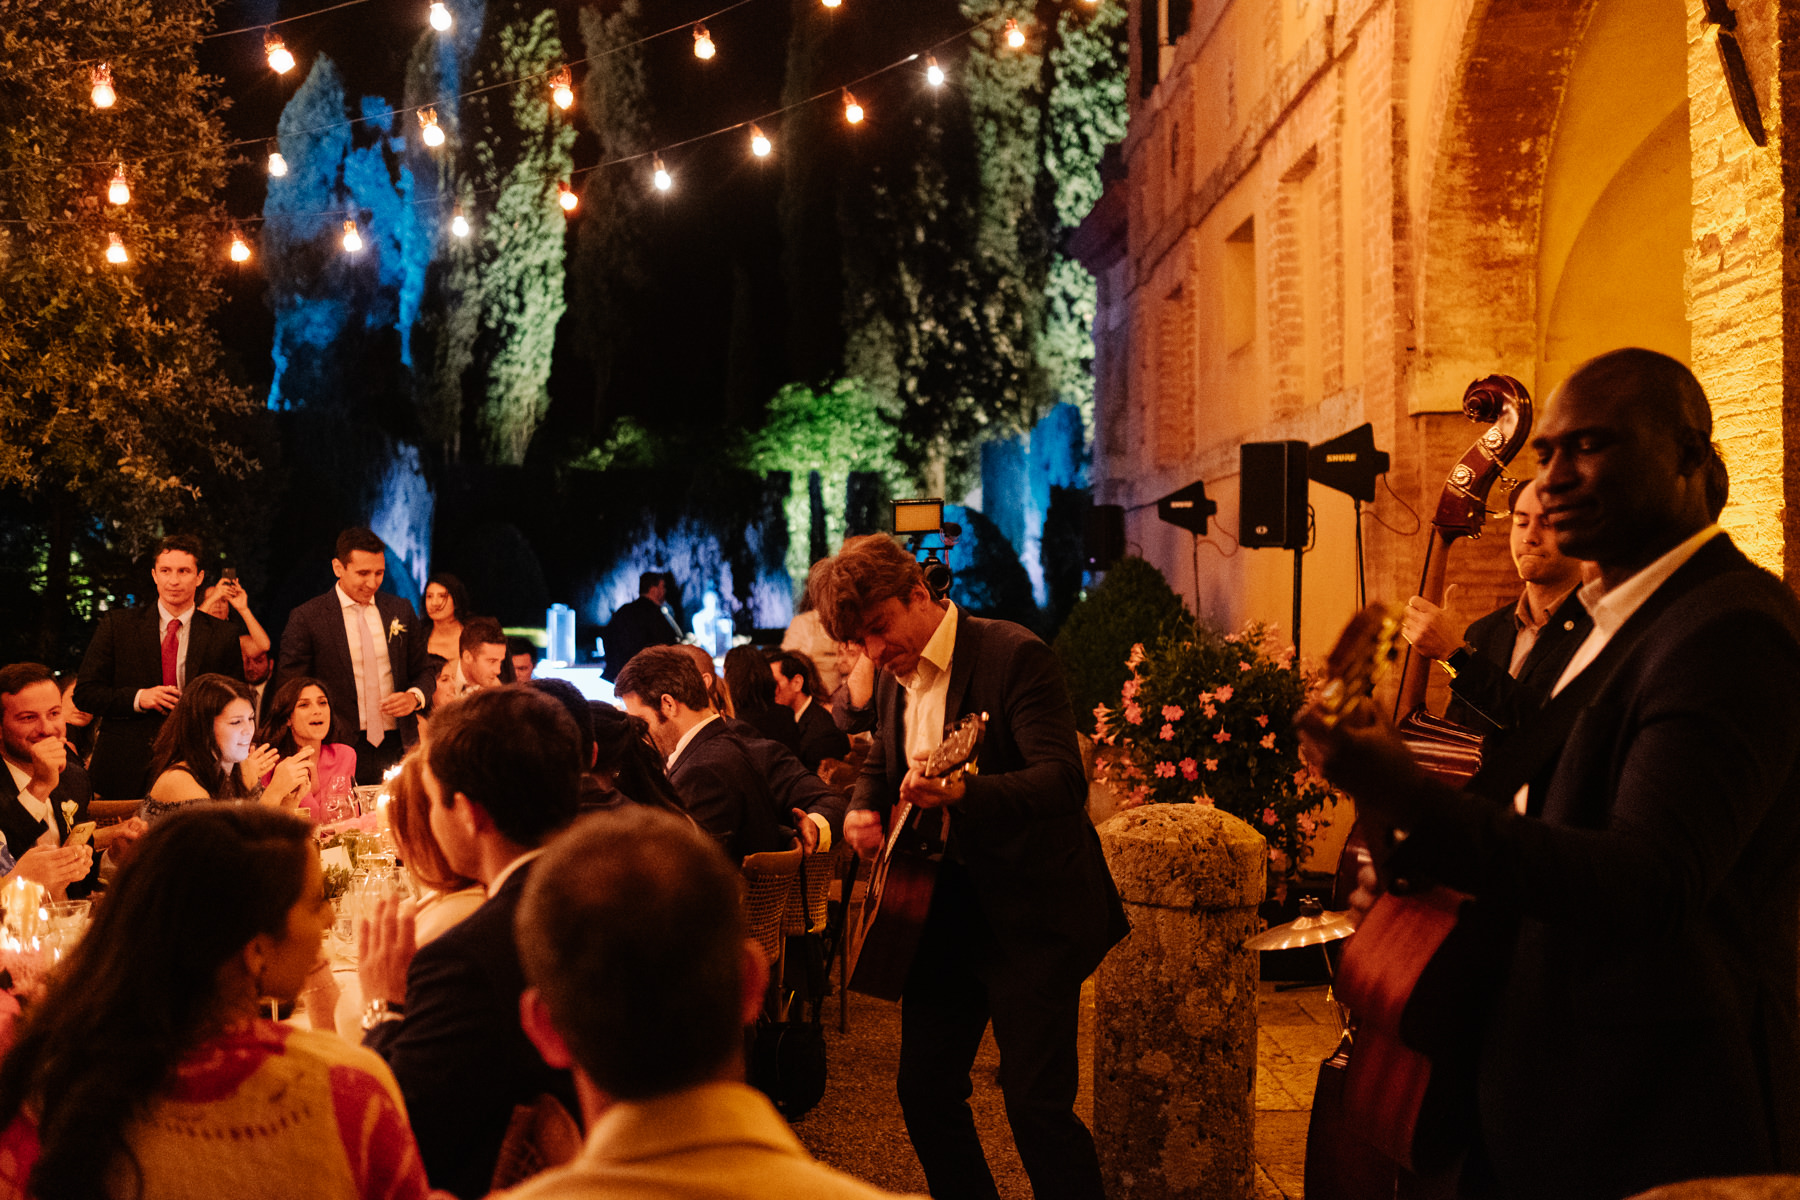 musician ideas at a wedding in Italy